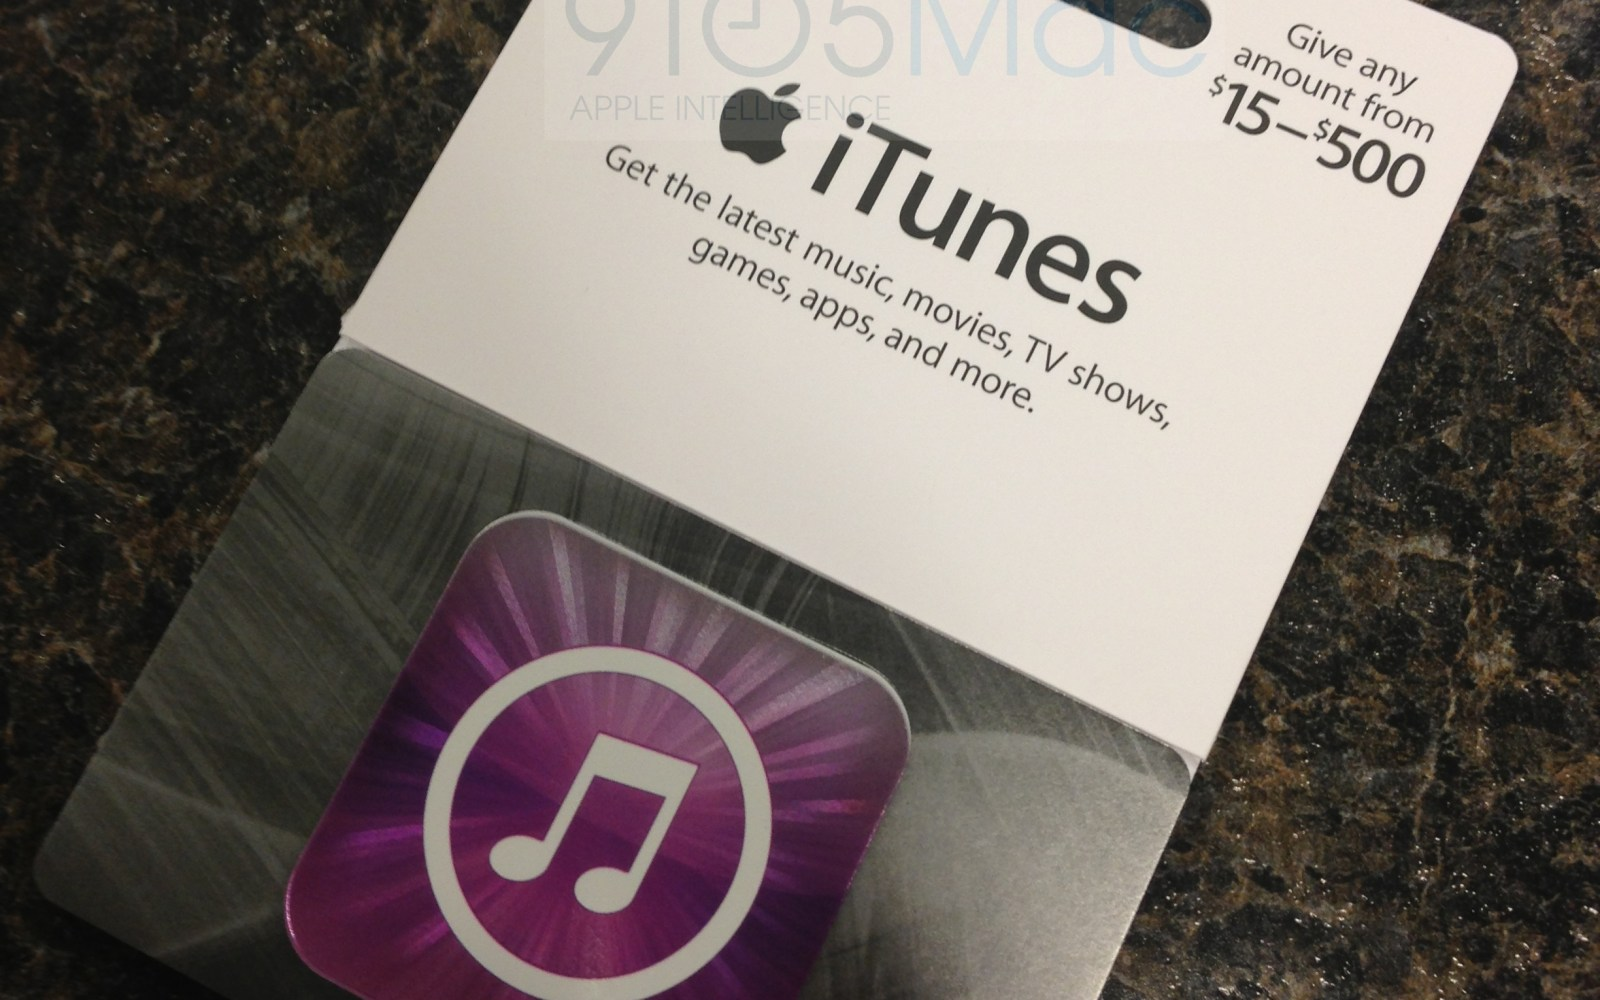 Apple Introduces Variable Cost Itunes Gift Cards To Third Party